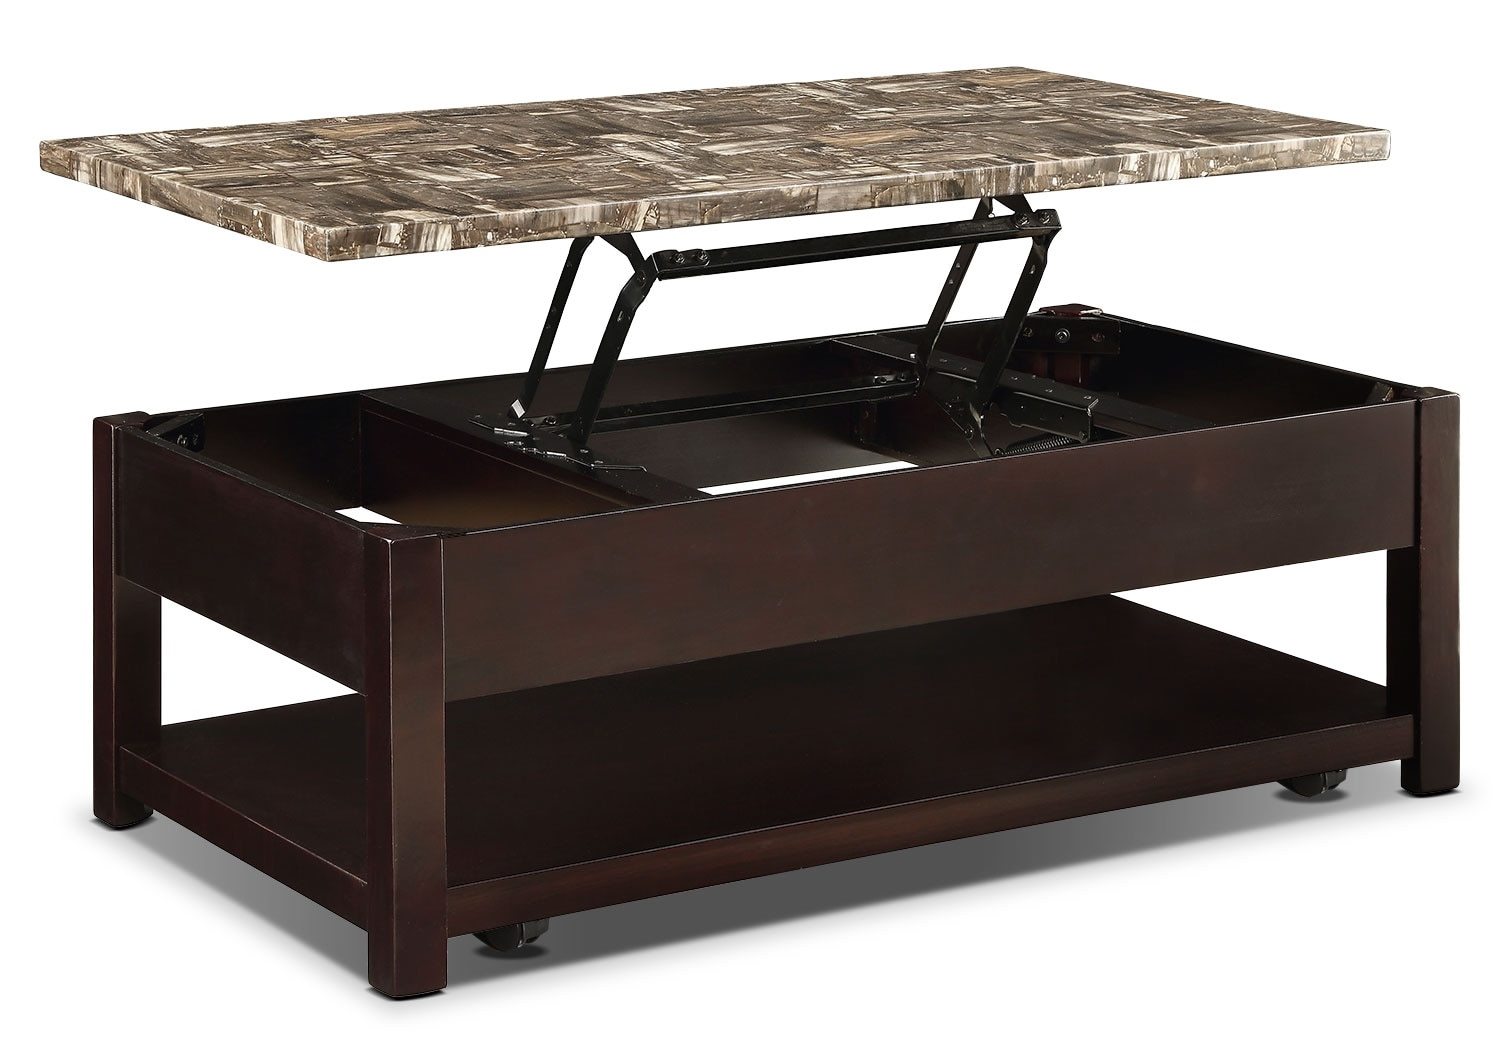 Sicily Coffee Table with Lift-Top and Casters